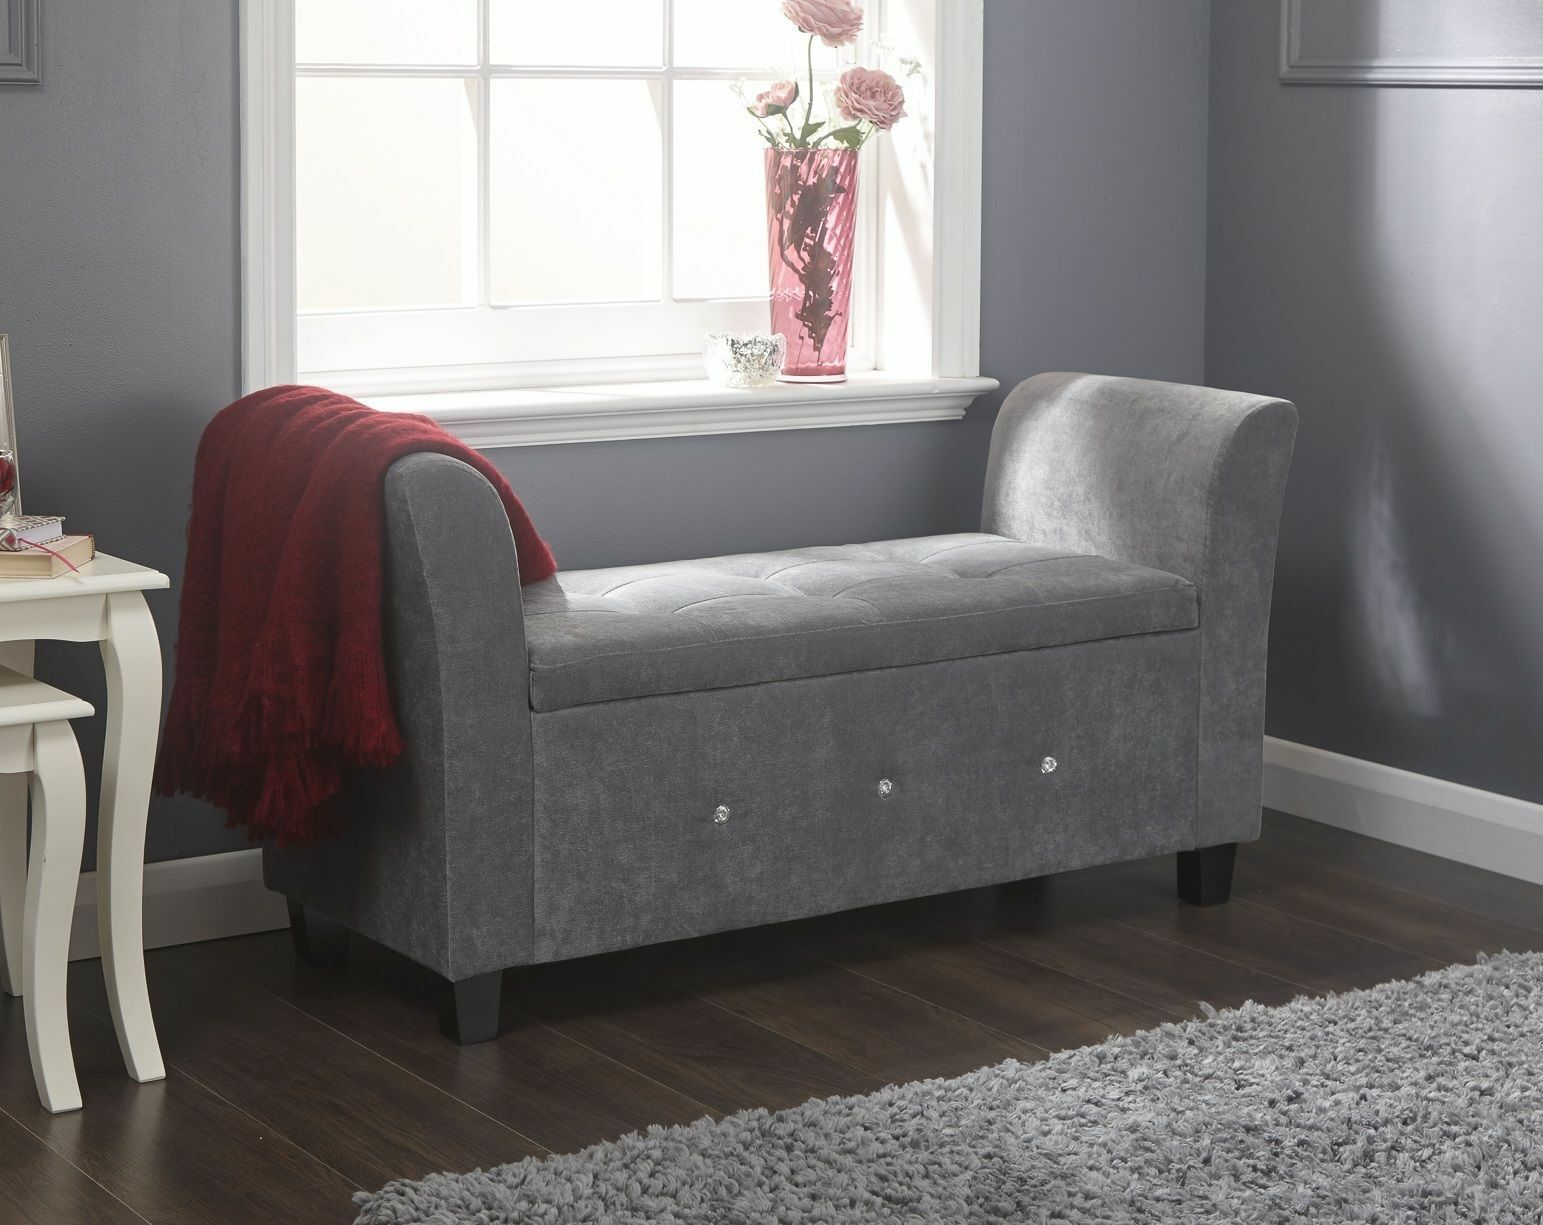 alaska grey ottoman storage diamante window seat  blanket box  ebay - £